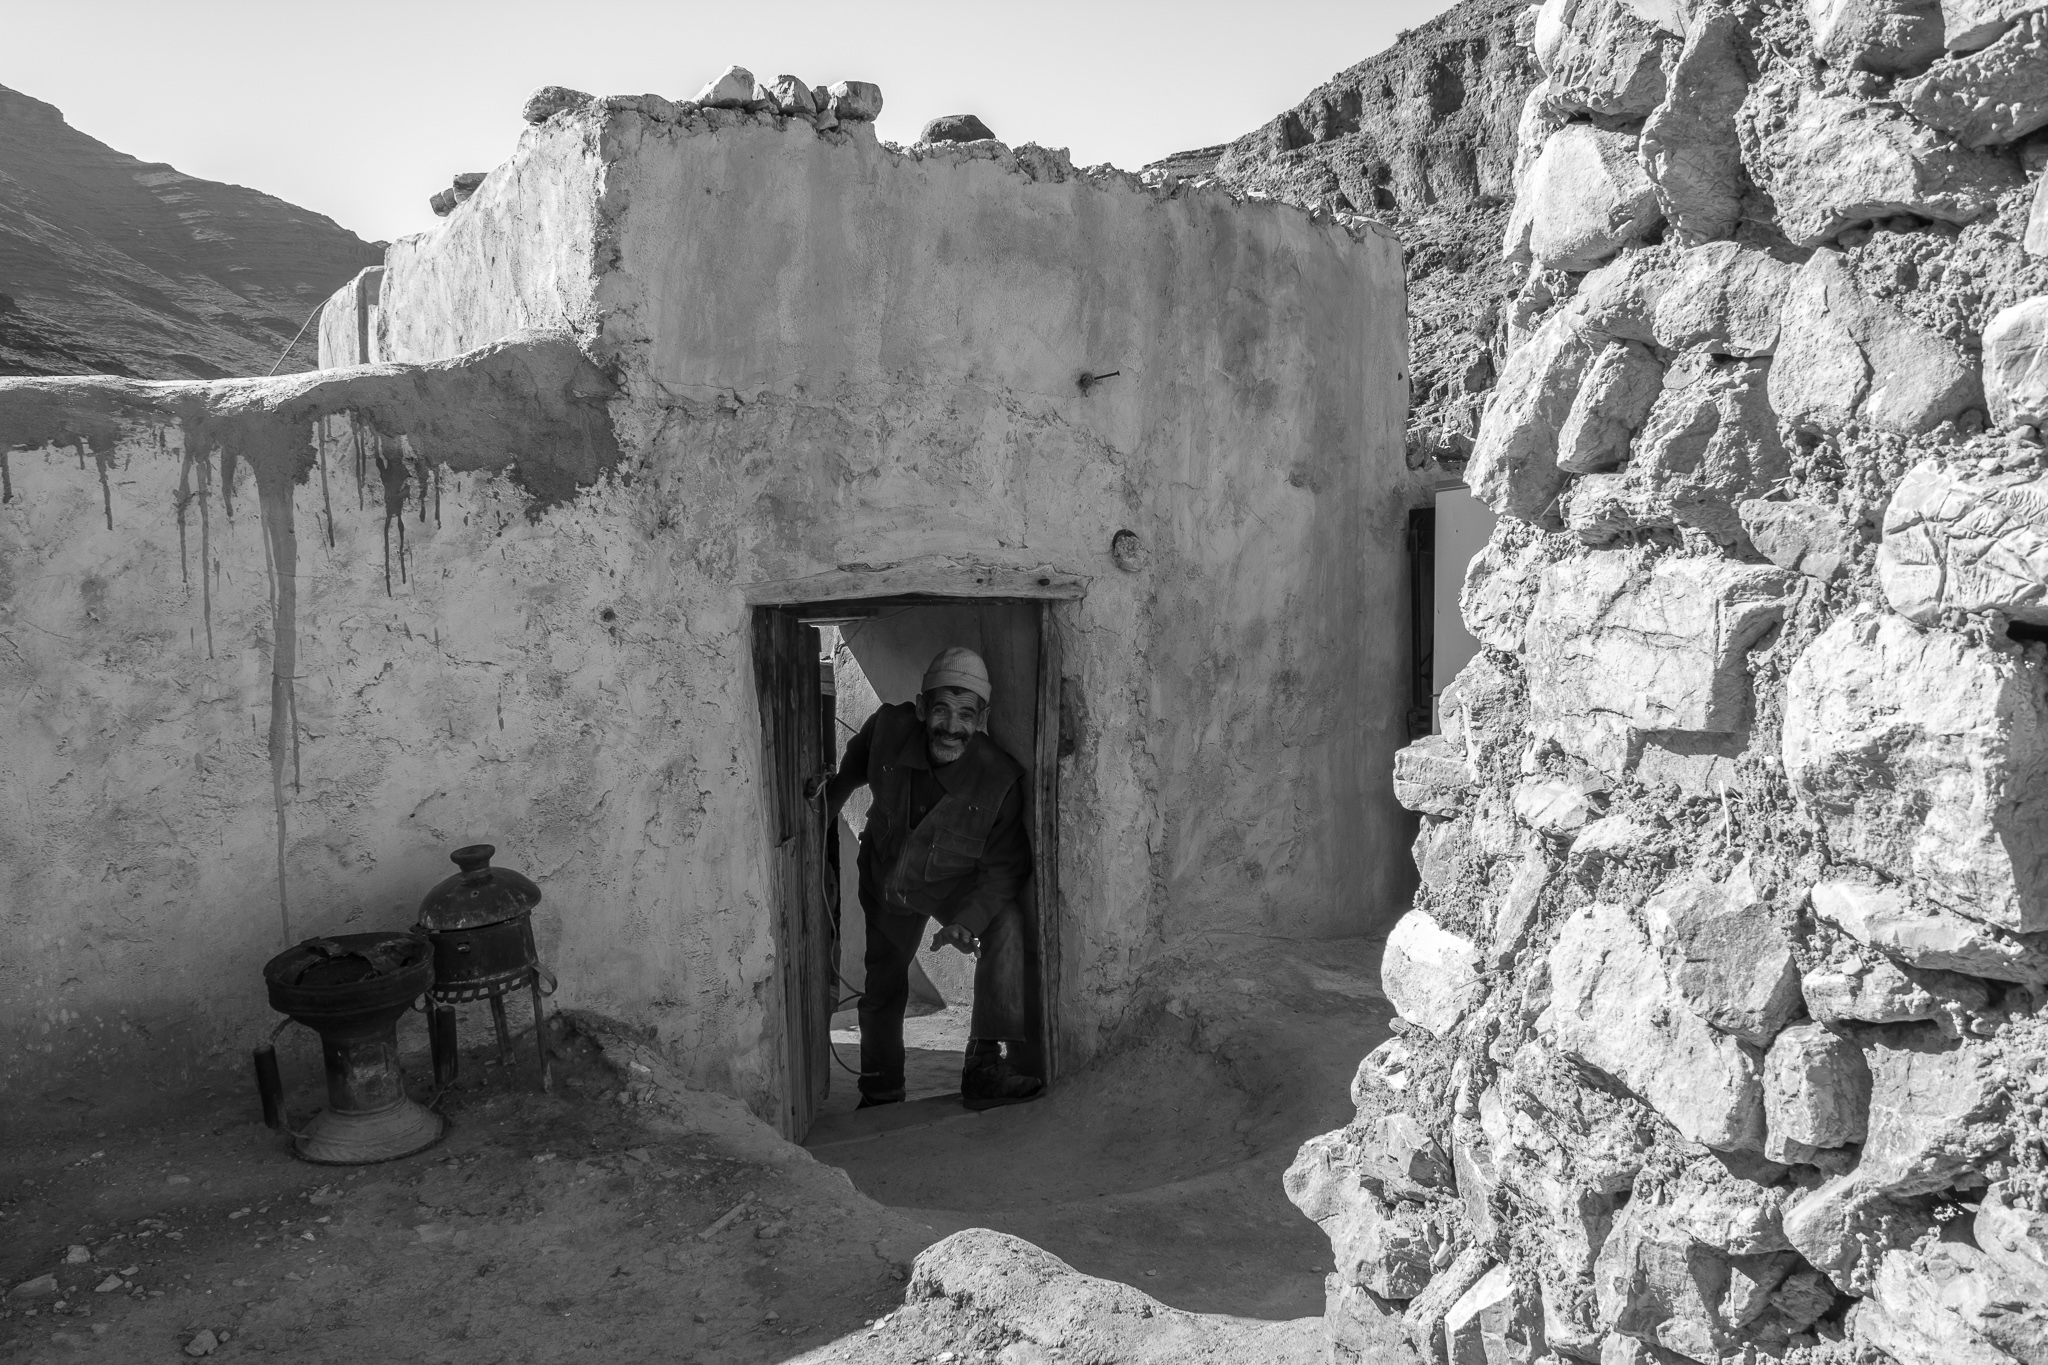 Thanks to a strong family relationship, the Amazigh learned to build and maintain their homes with their own hands using the materials of the mountain. <br> They mainly use a clay-based mass, straw, and water to build the stone walls, and cover their ceilings with wood and straw before sealing them.